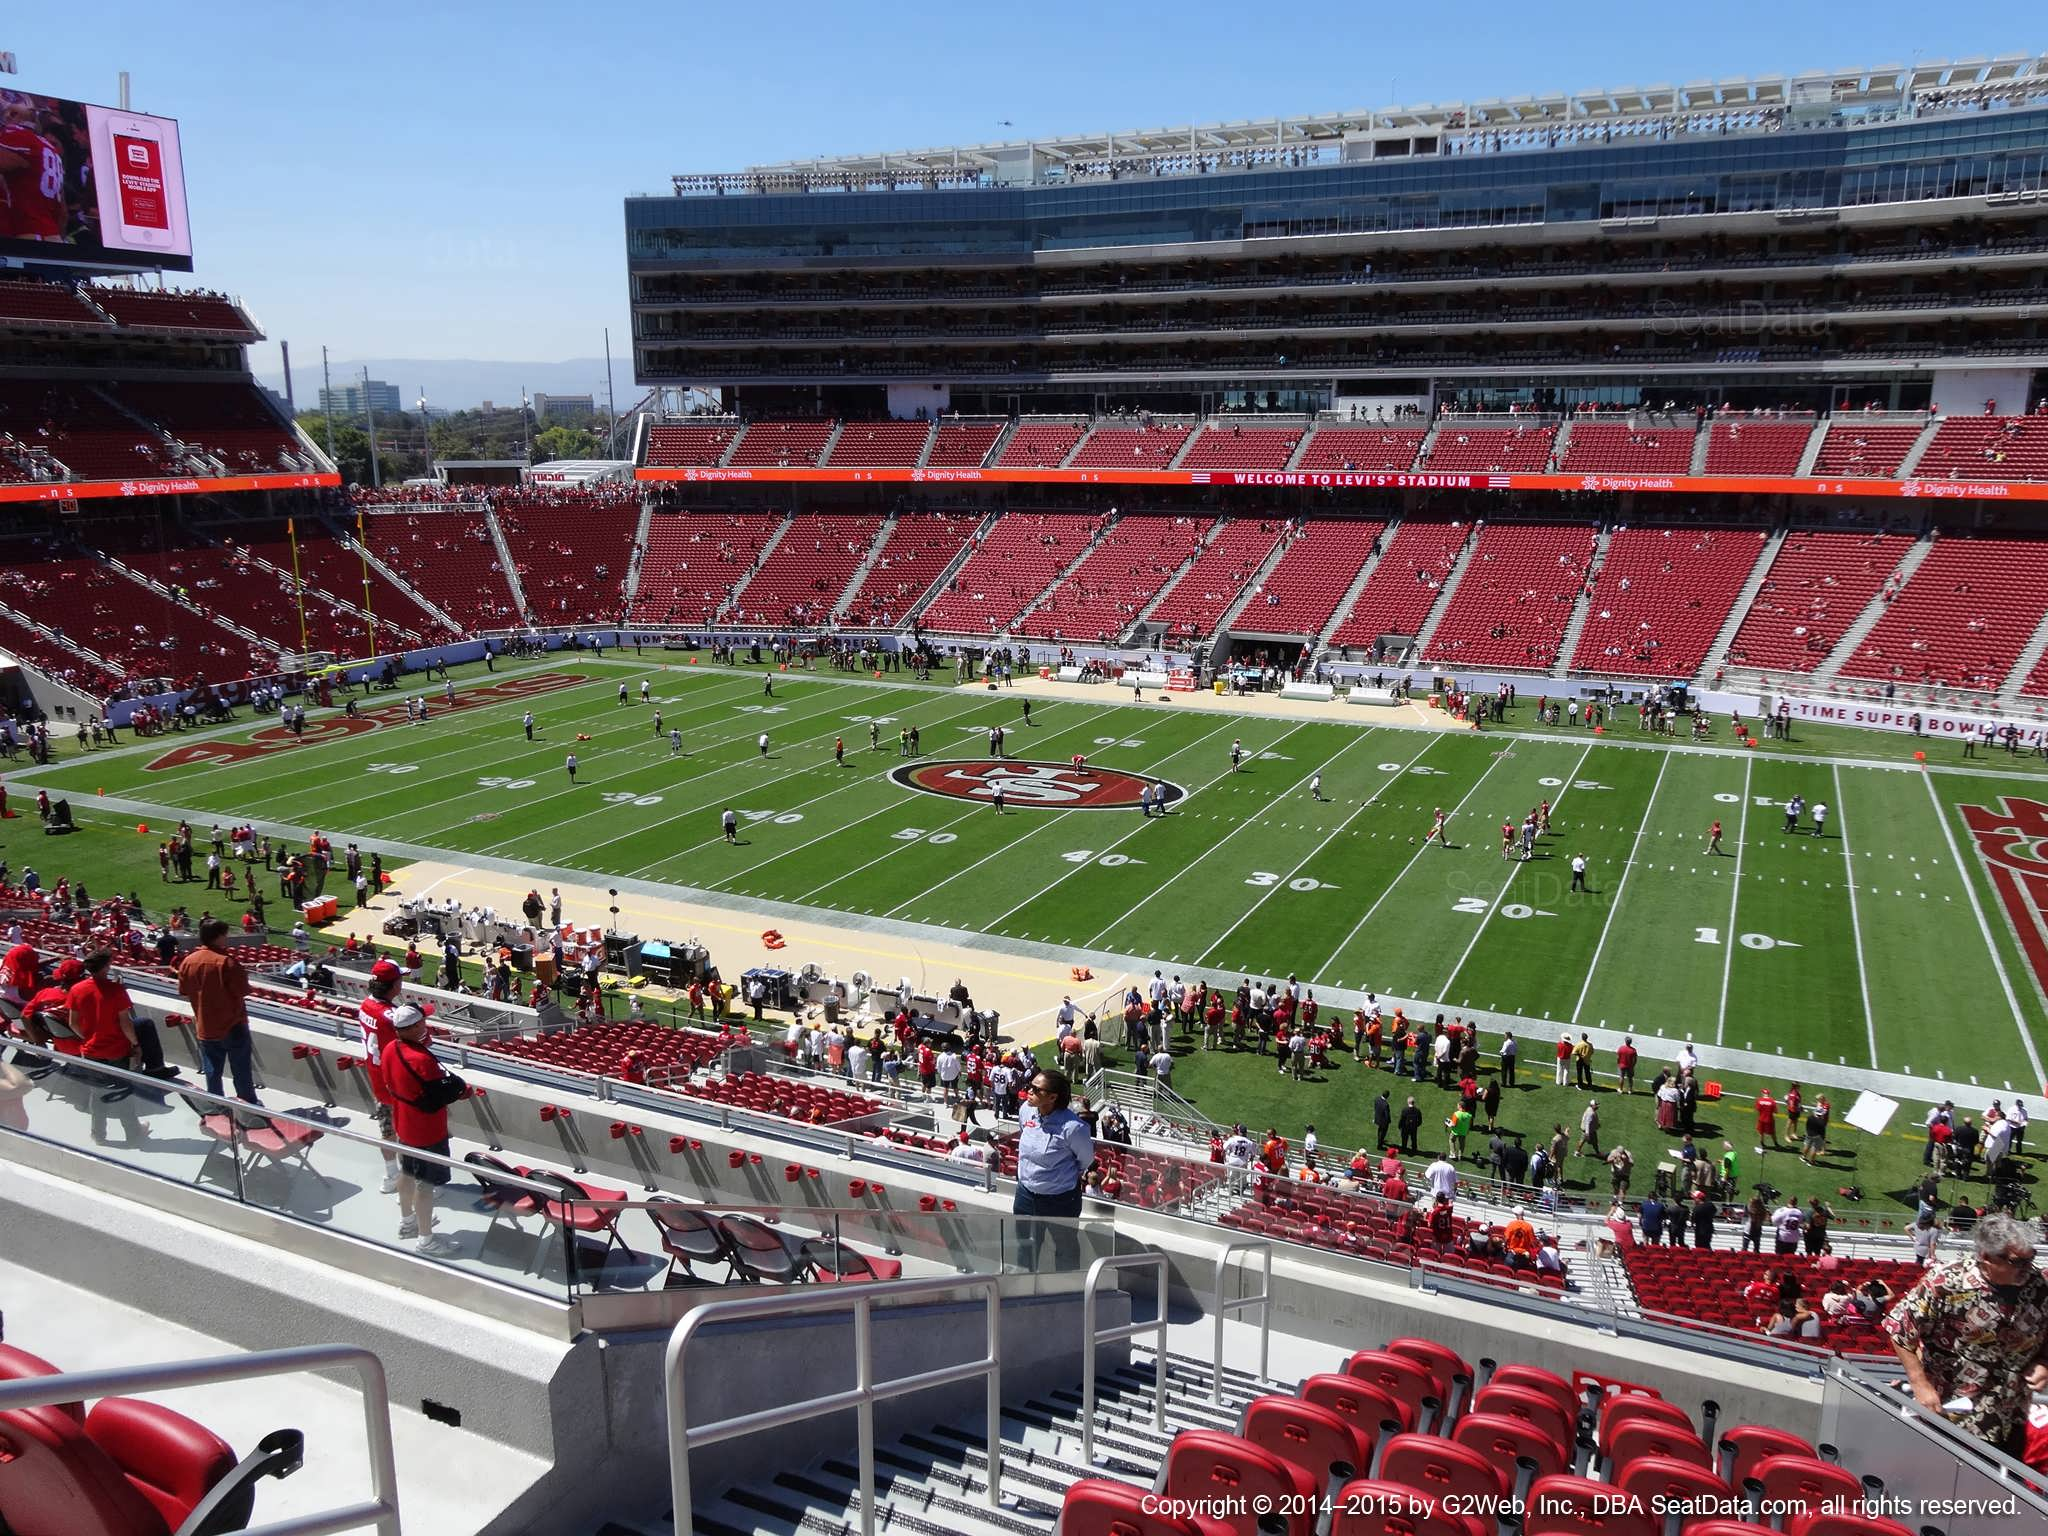 Seat view from section 212 at Levi's Stadium, home of the San Francisco 49ers